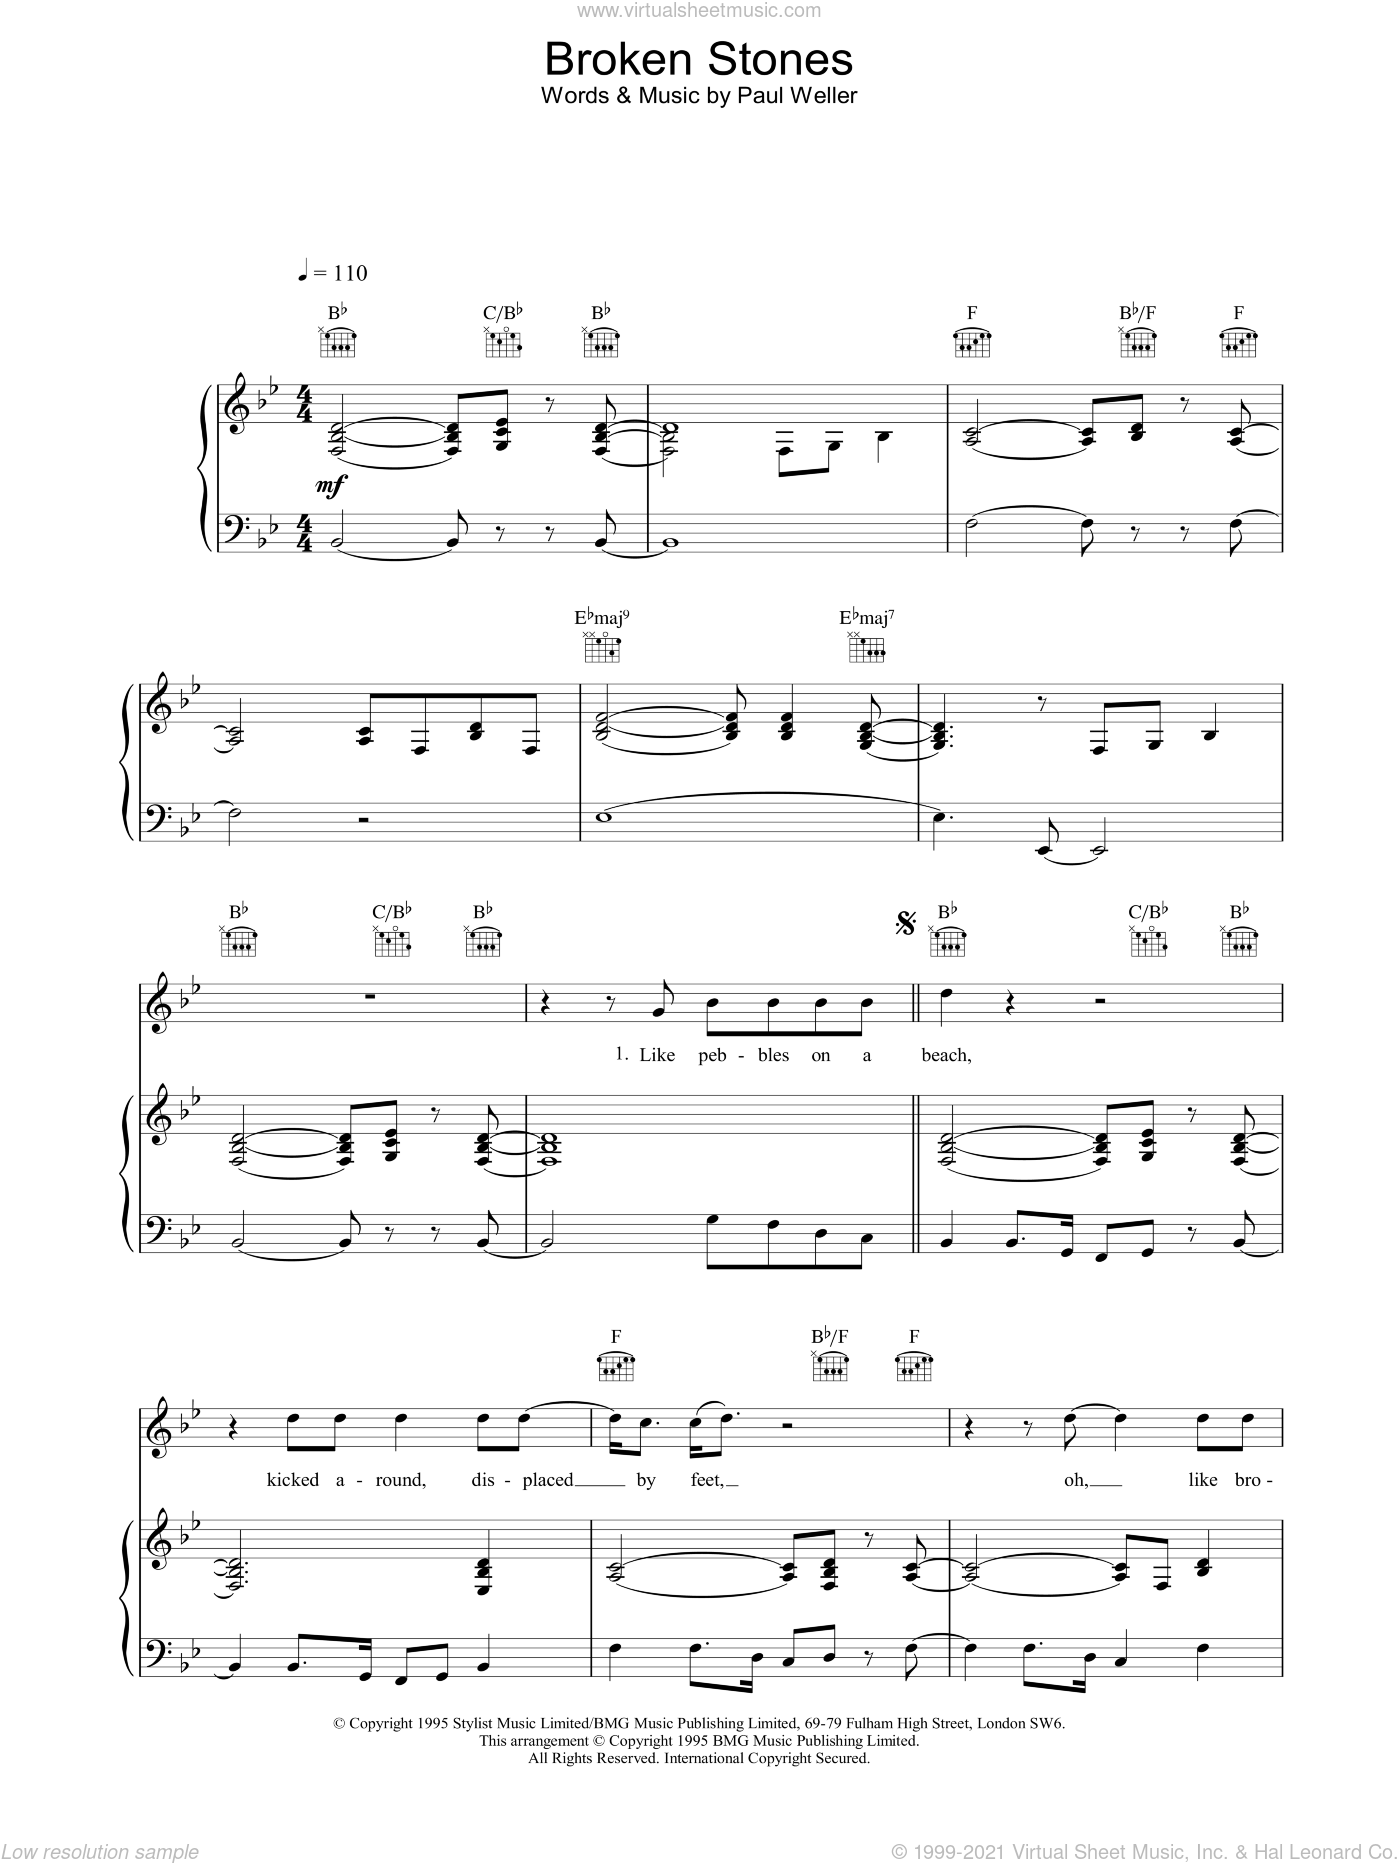 Broken Stones sheet music for voice, piano or guitar by Paul Weller, intermediate skill level